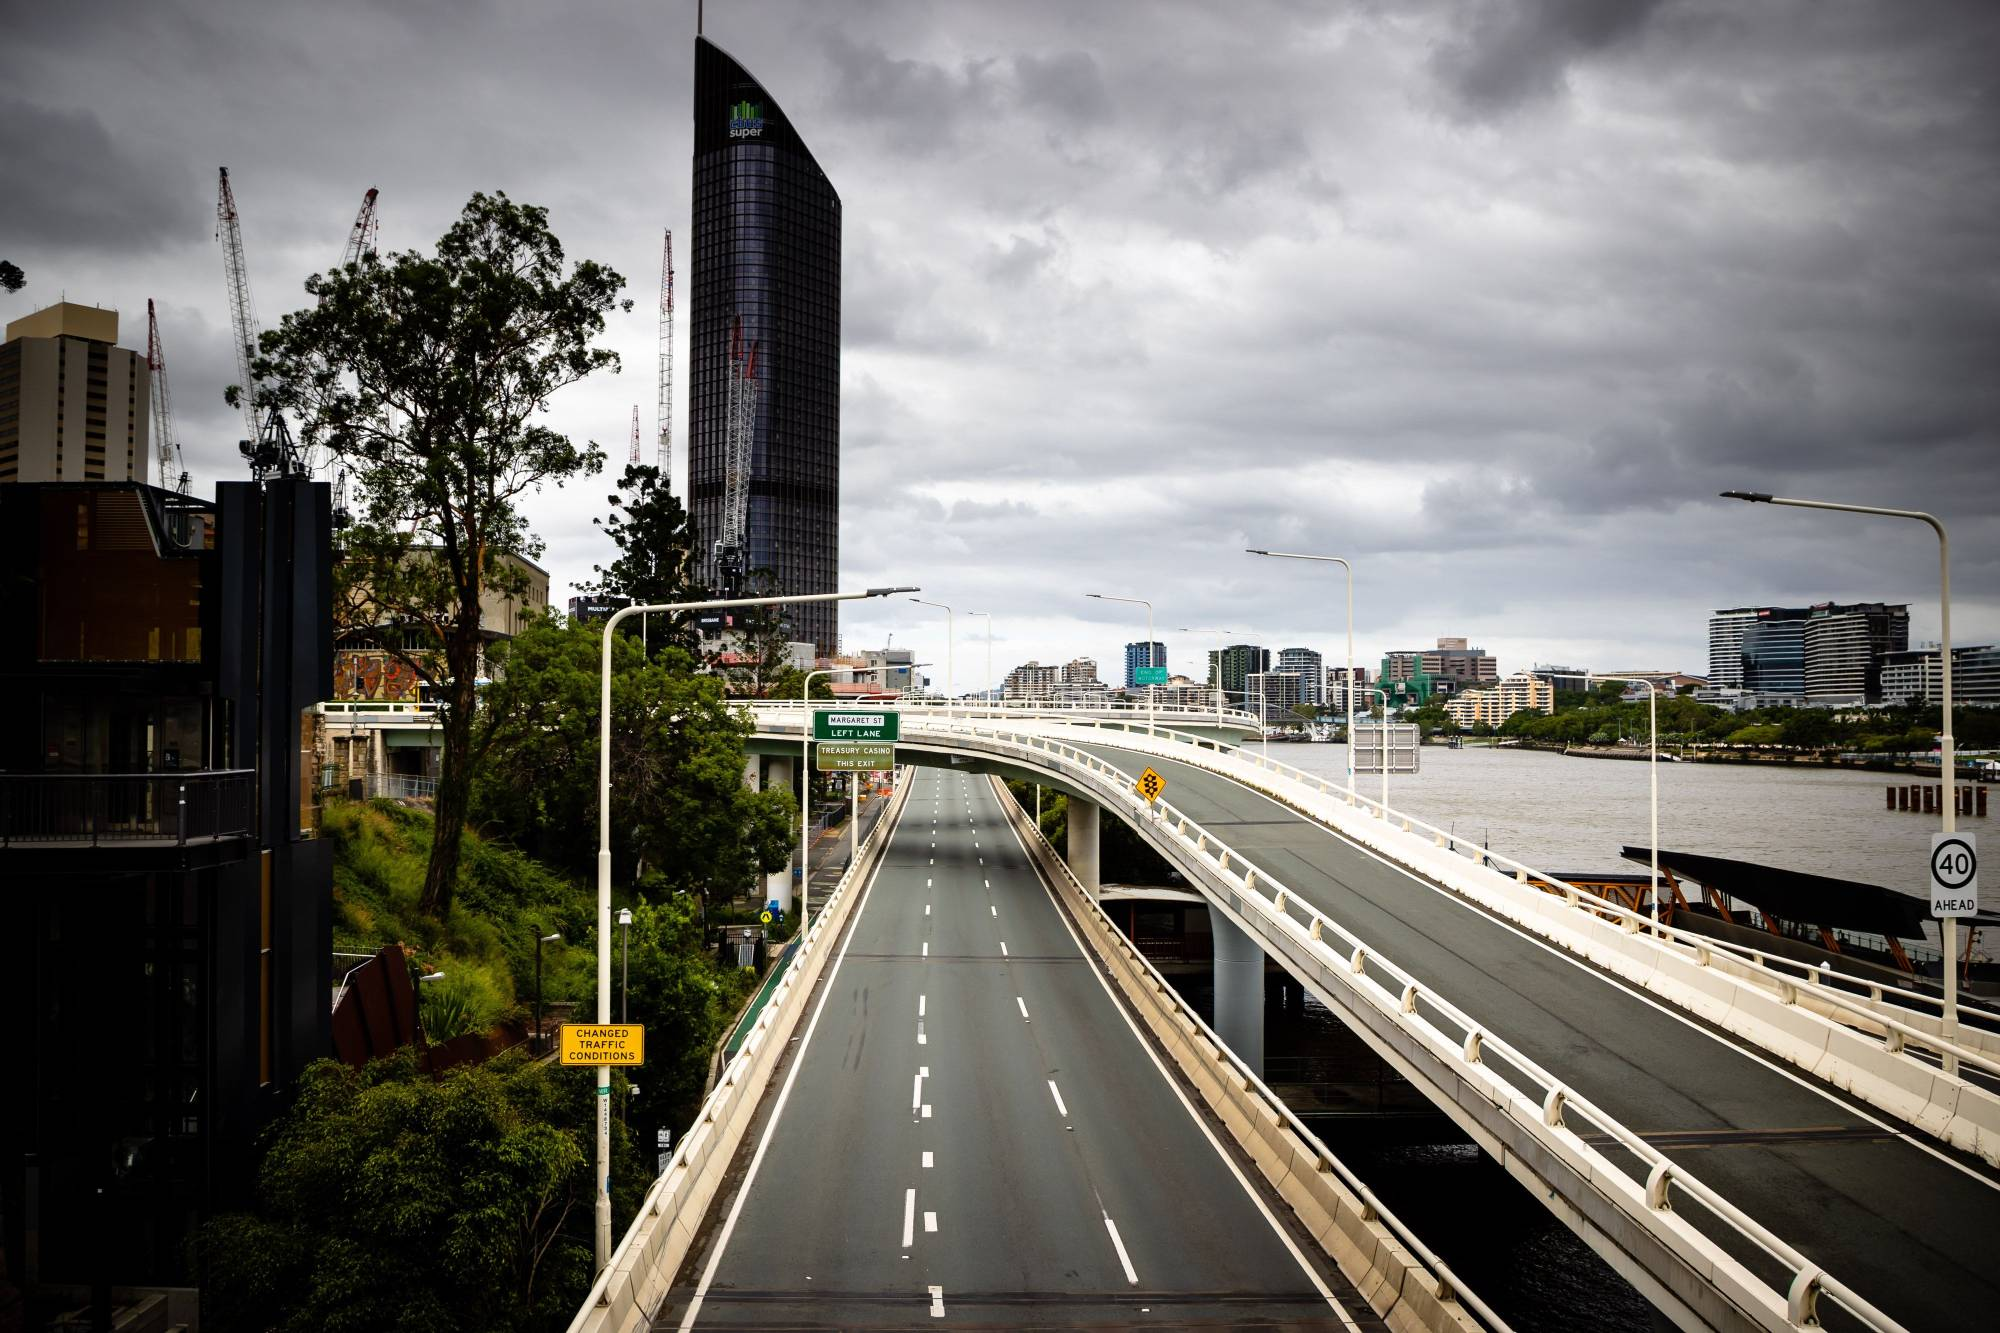 A deserted Riverside Expressway is seen on the first day of a snap lockdown in Brisbane on Saturday. | AFP-JIJI